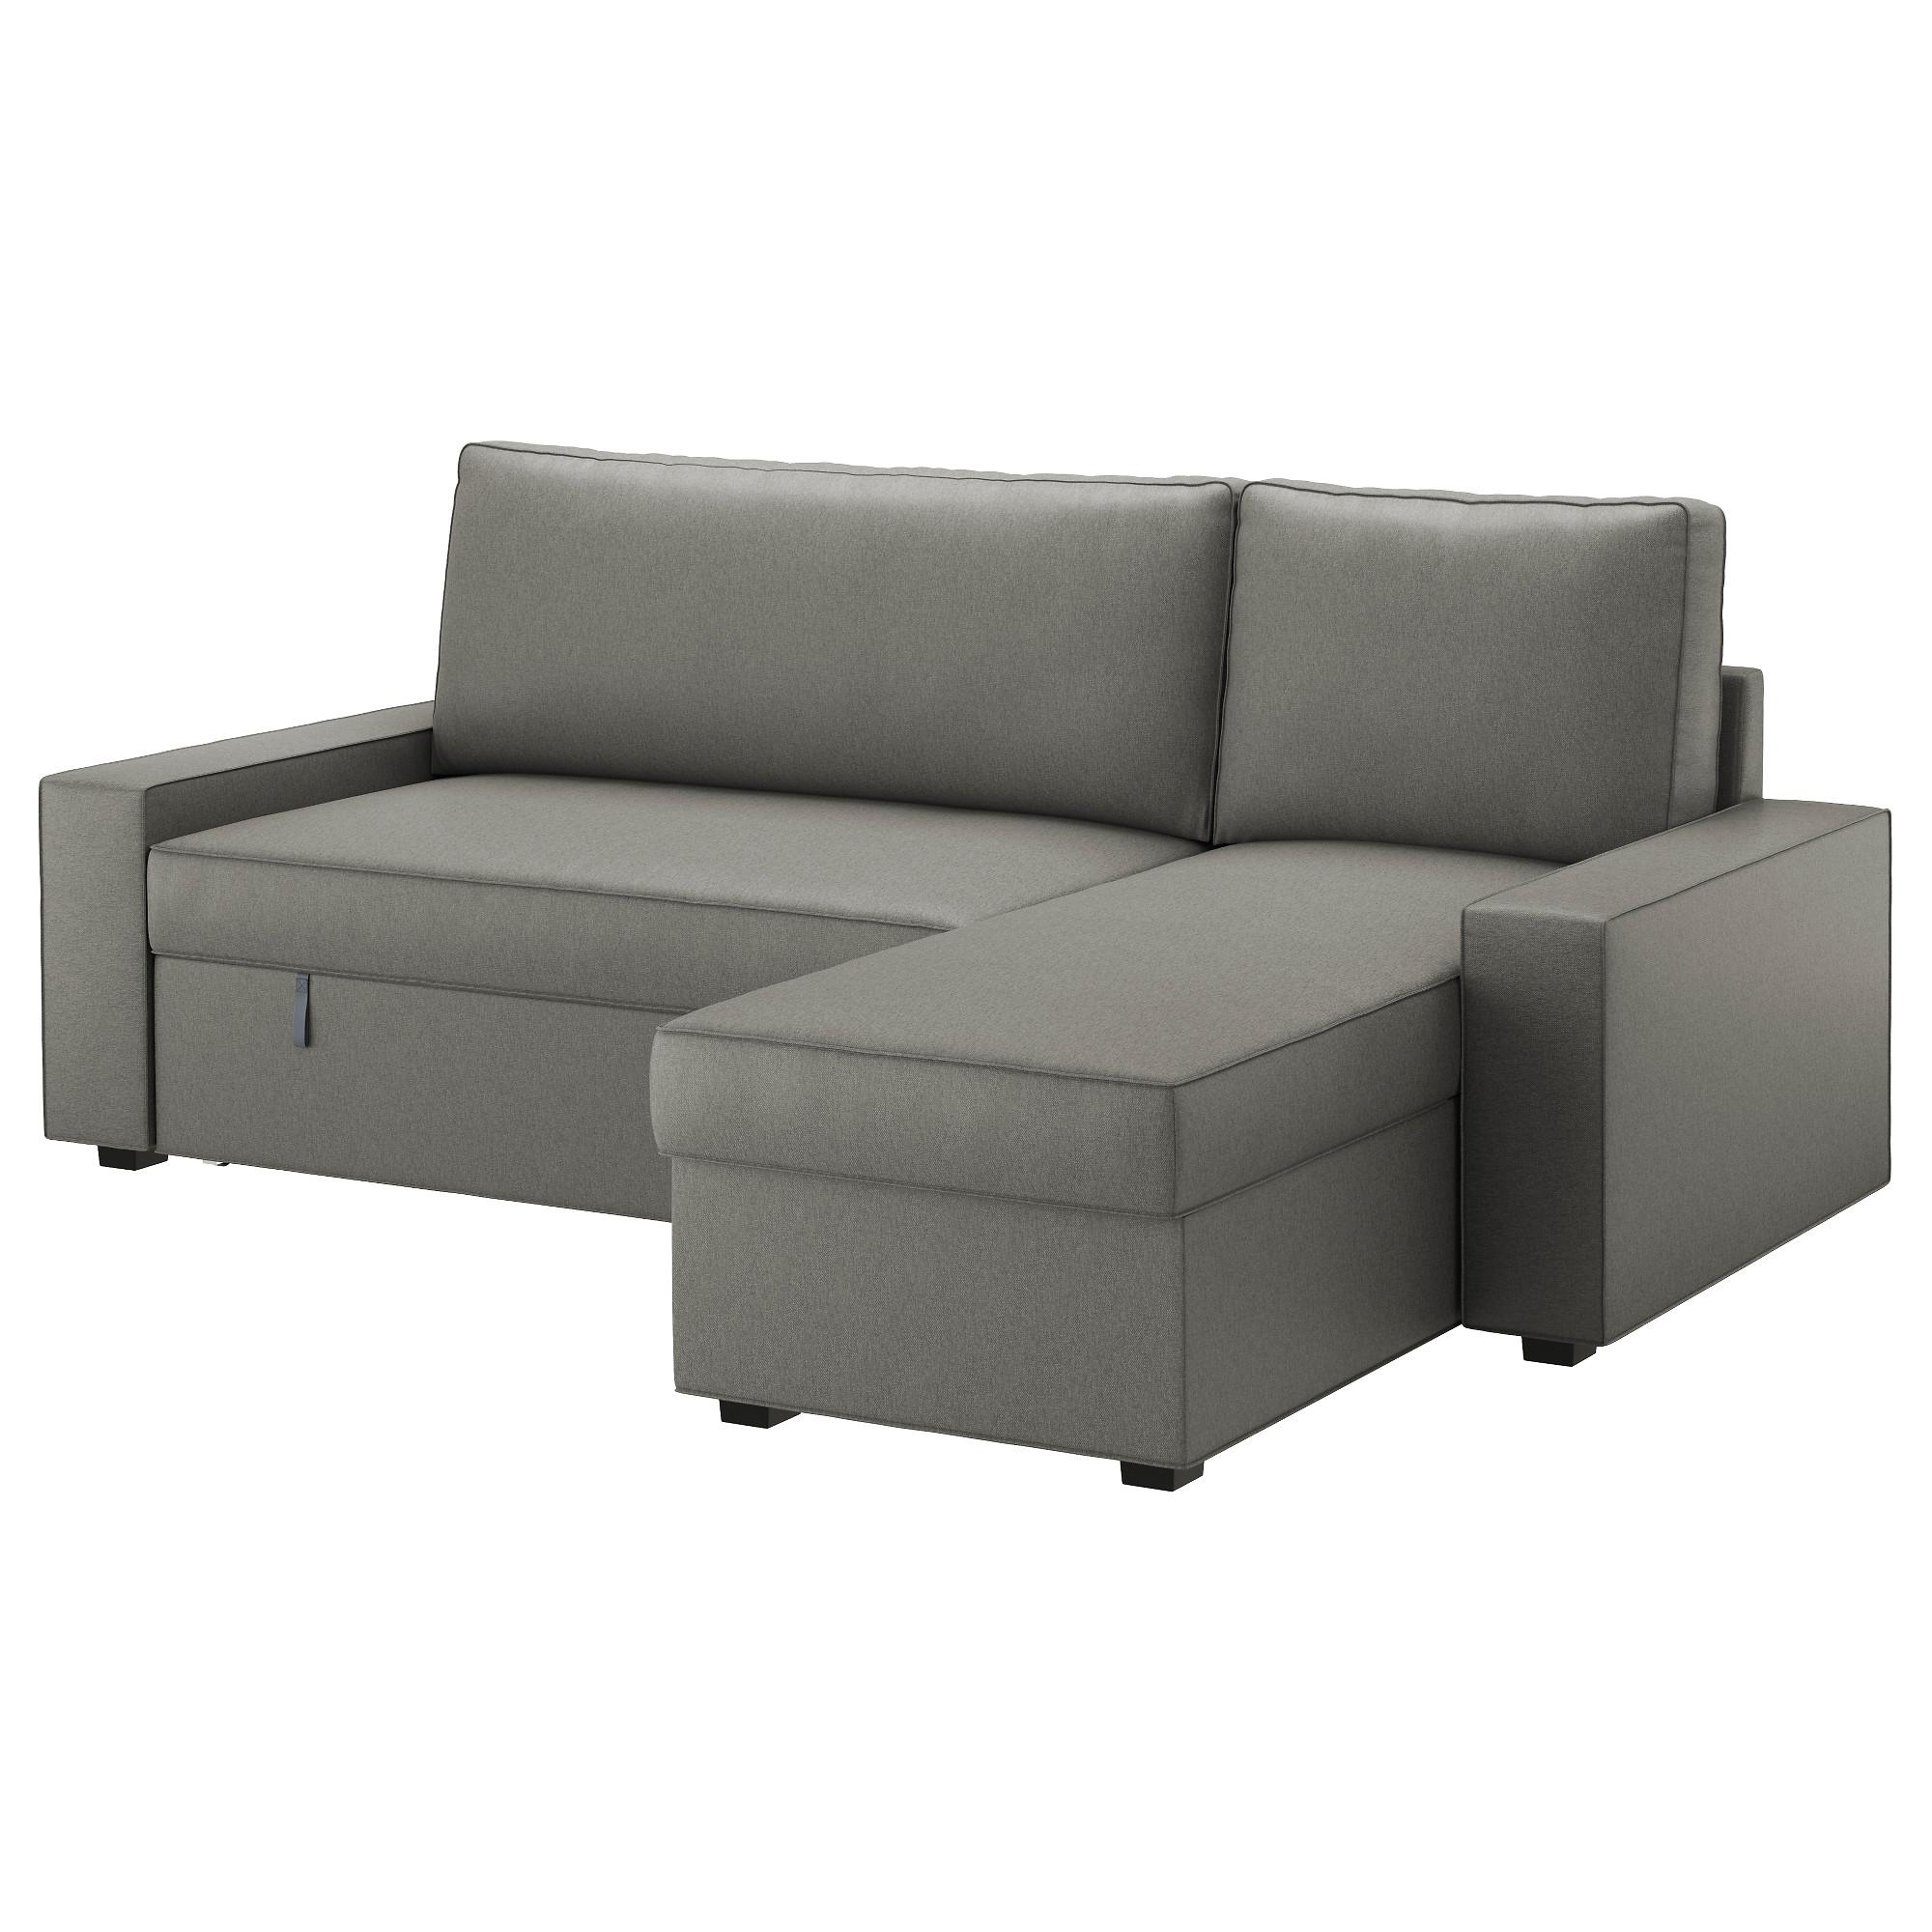 20 best ideas chaise longue sofa beds sofa ideas for Chaise longue sofa bed argos